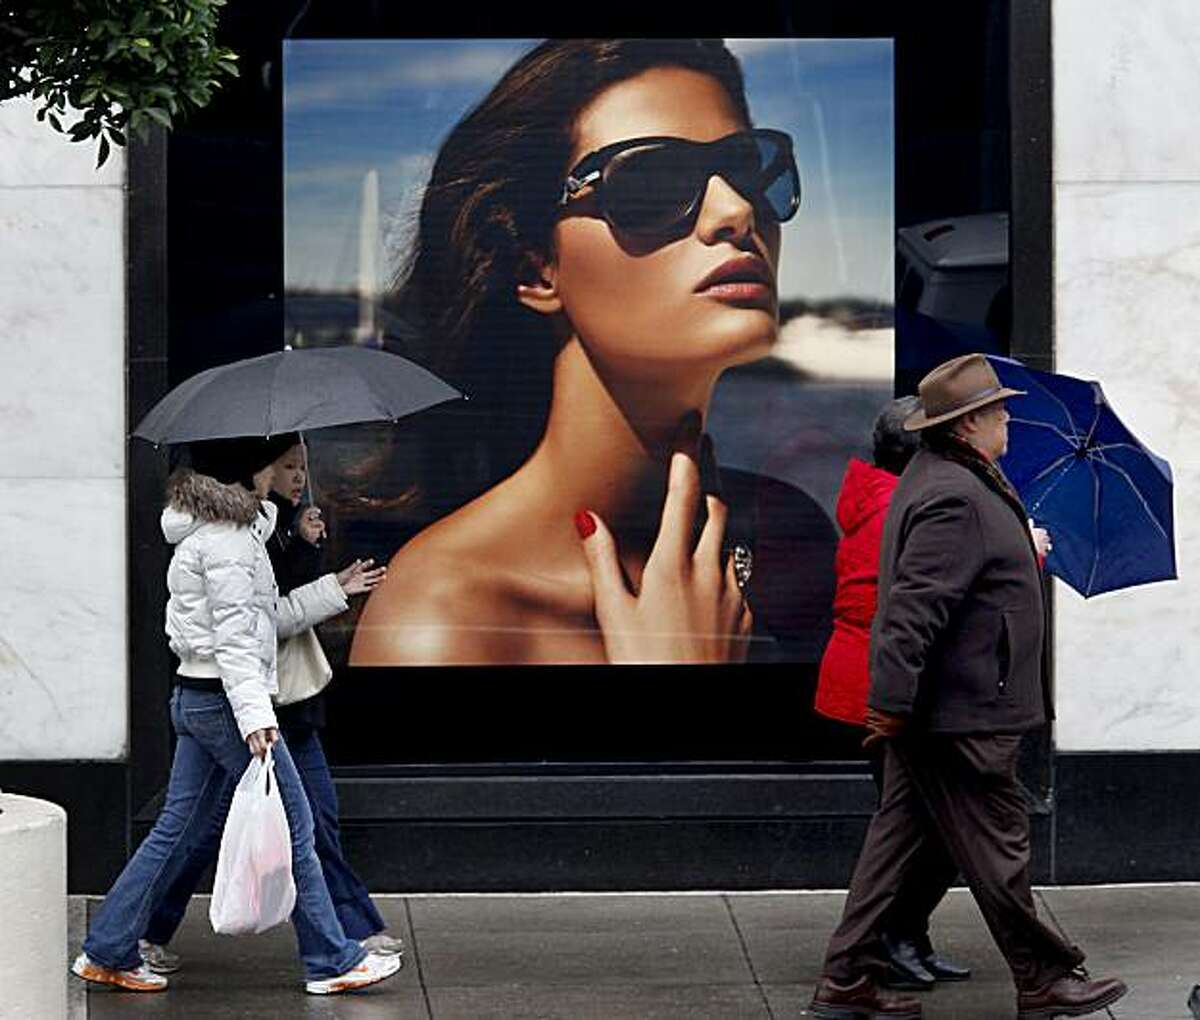 On Geary Street, shoppers walk by a sunny ad for Louis Vuitton. The predicted storms for the week began Sunday, but rainfall was sporadic in downtown San Francisco during the afternoon.